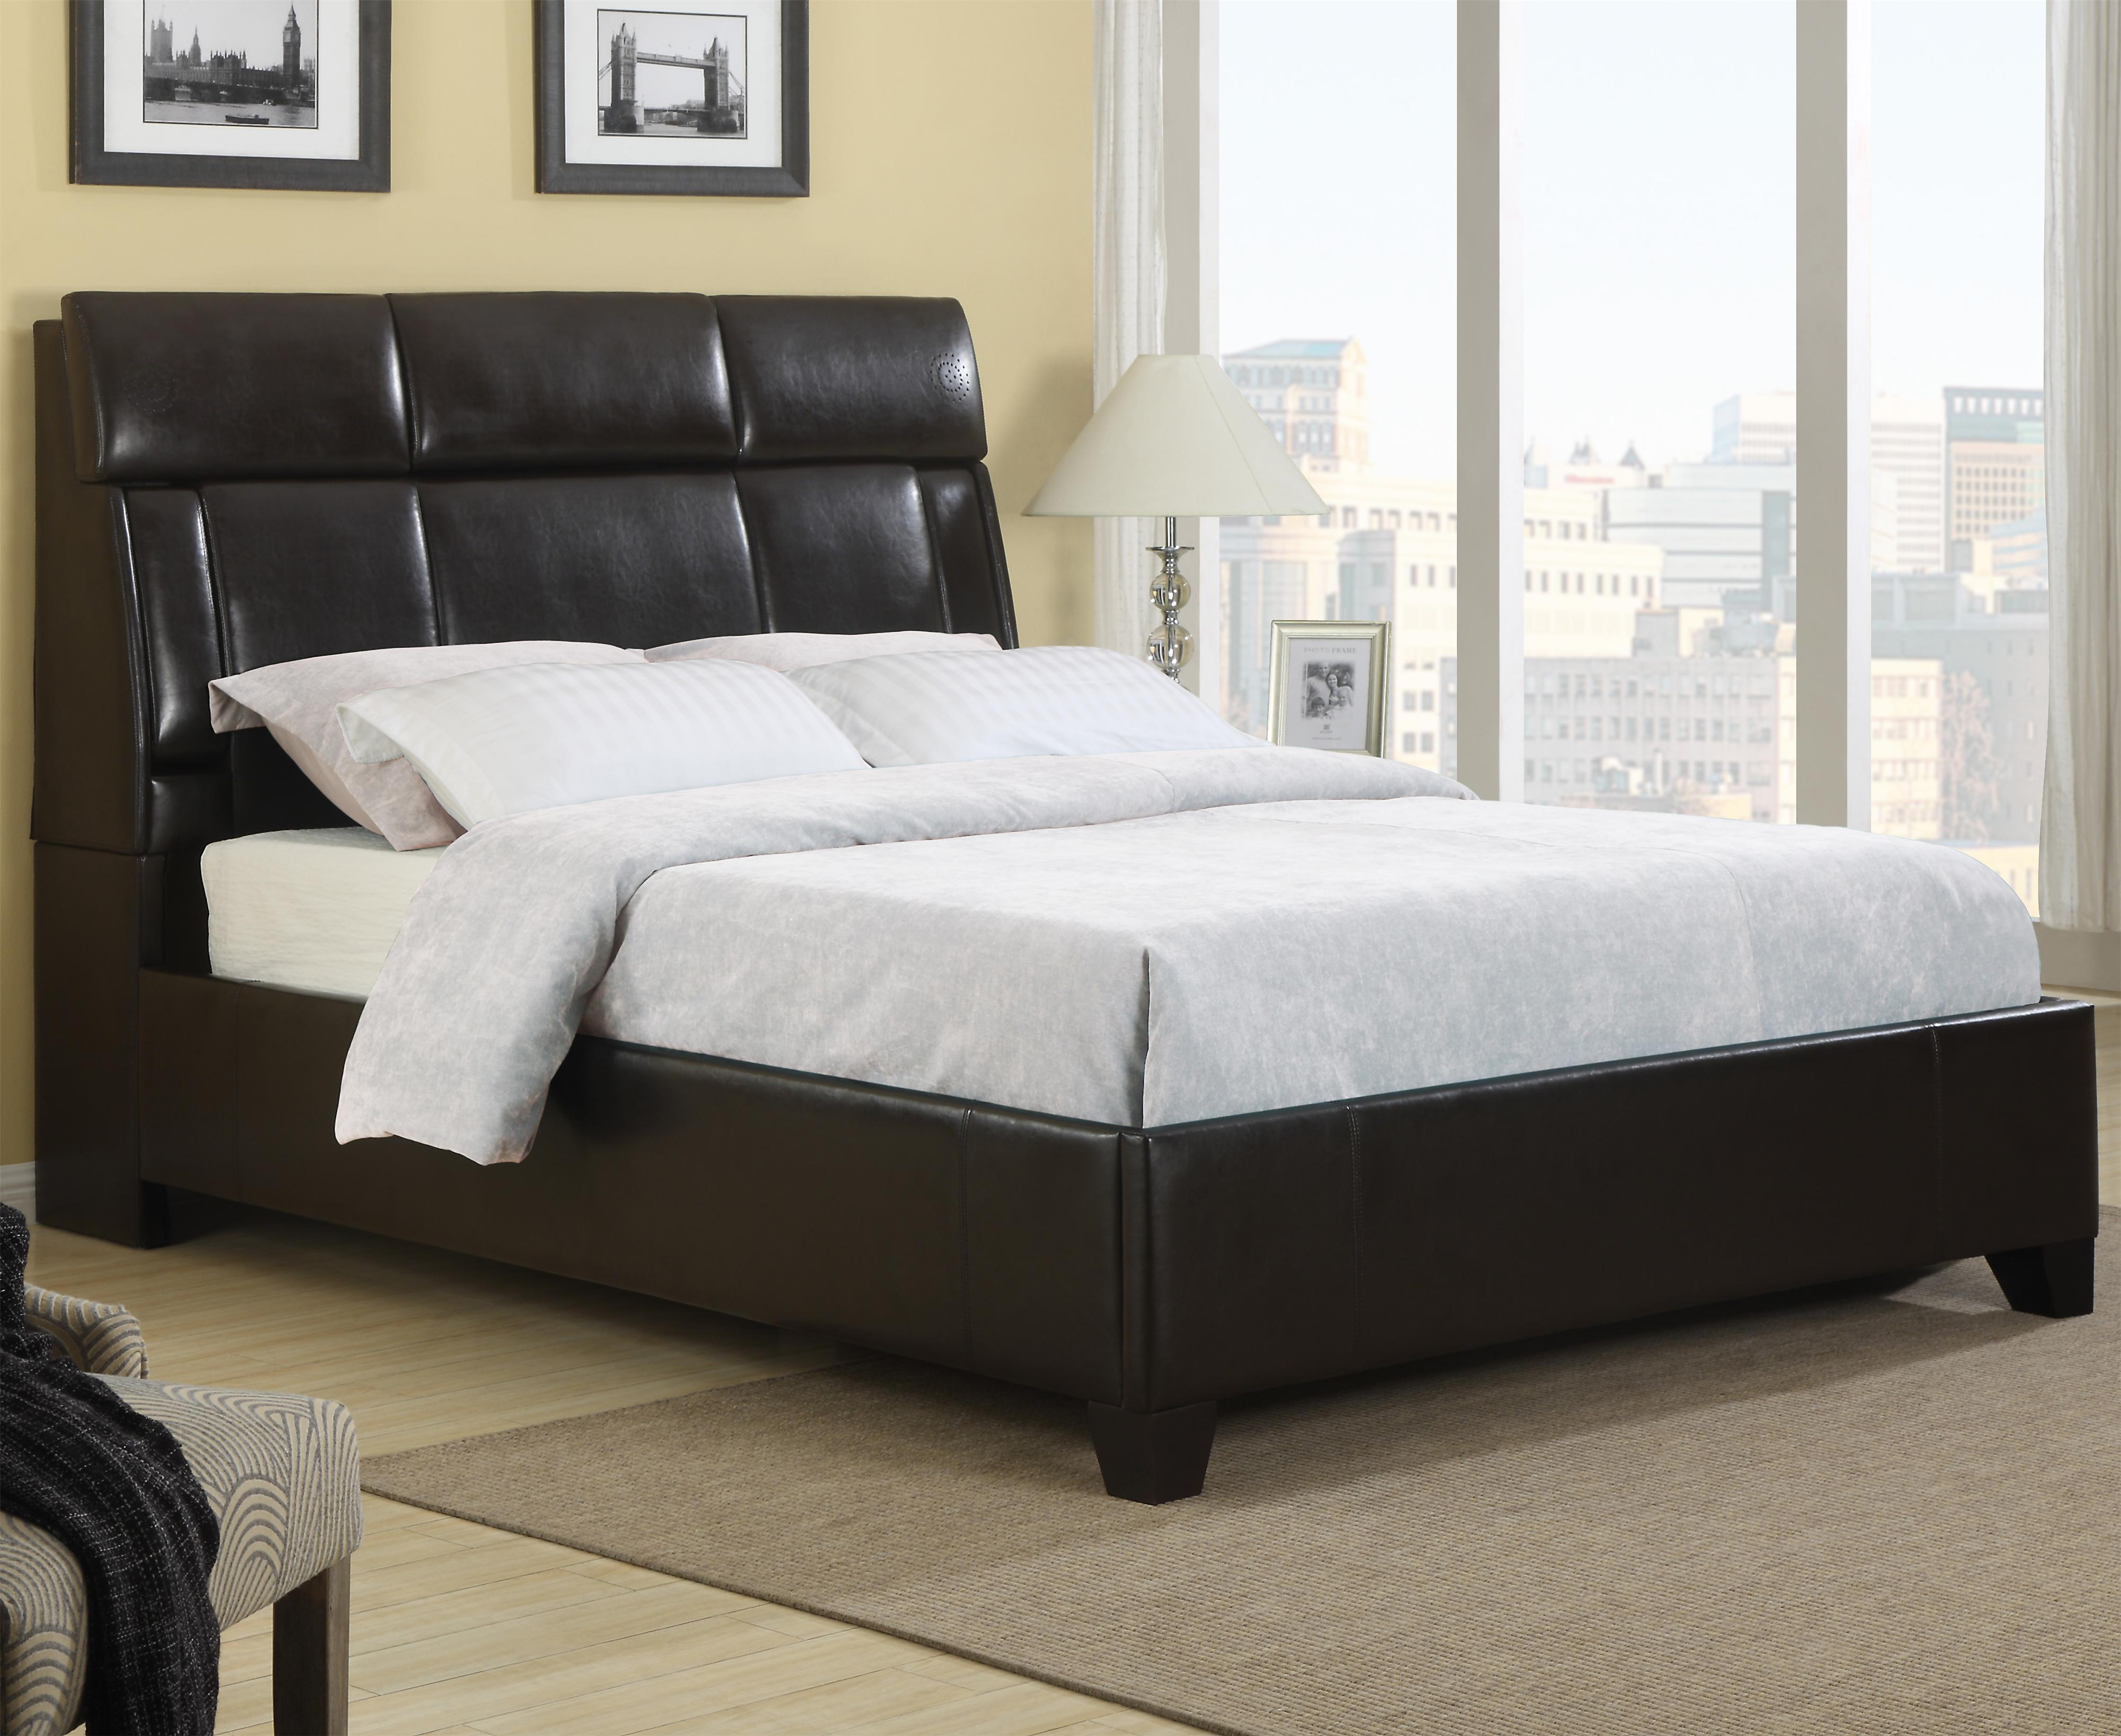 samuel lawrence dreamsurfer deluxe black queen upholstered bed with